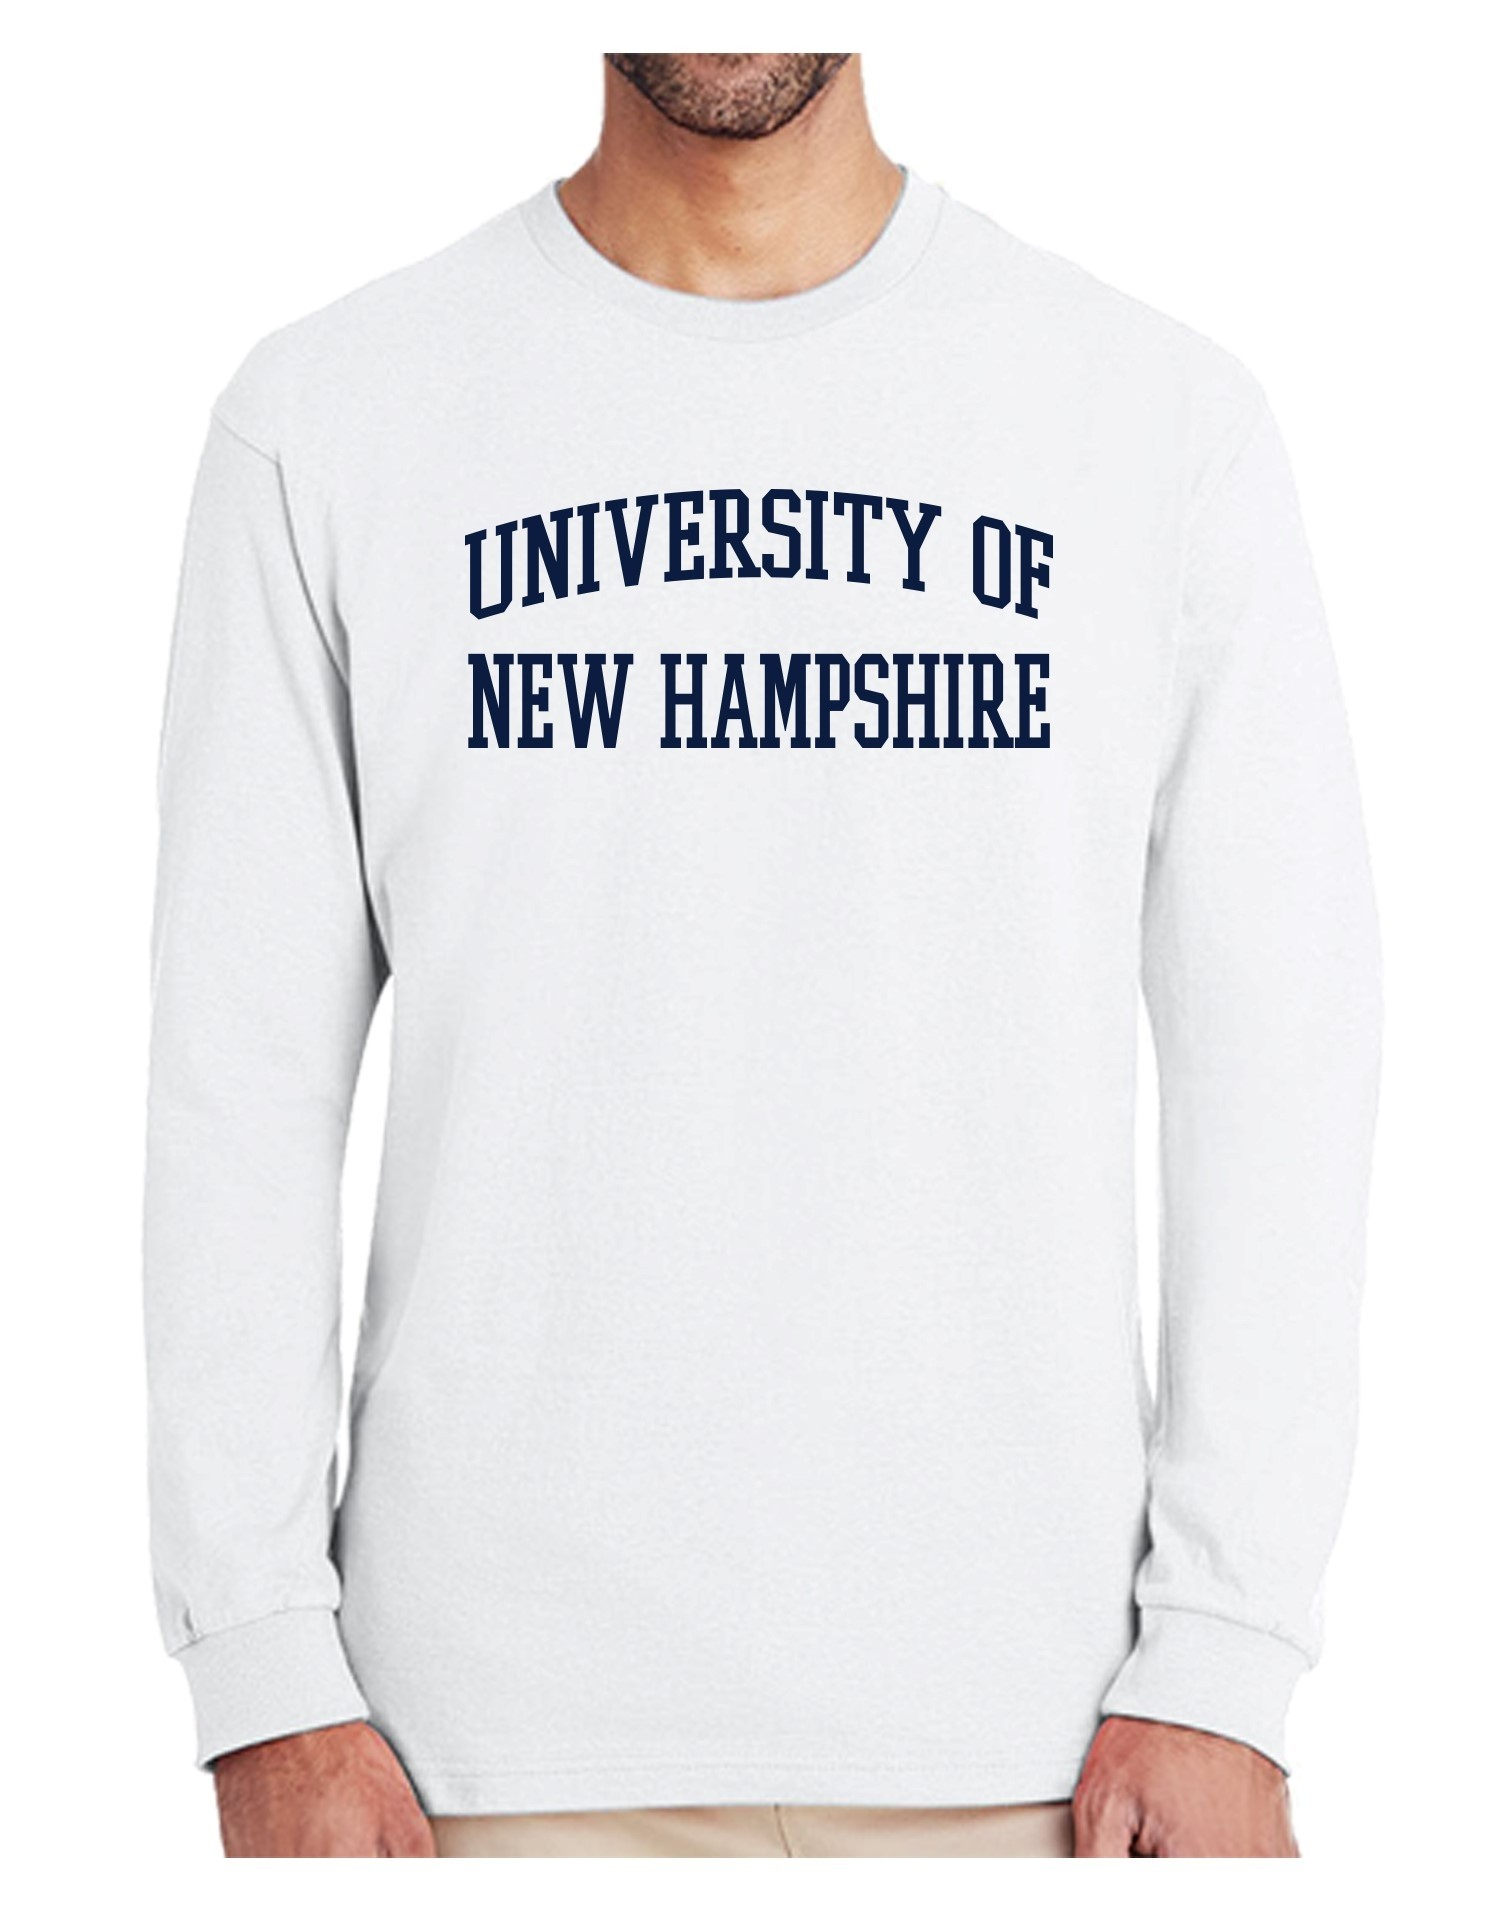 6355c2f44 UNH TEXT UNISEX LONG SLEEVE TEE - Long Sleeve - Men's Apparel